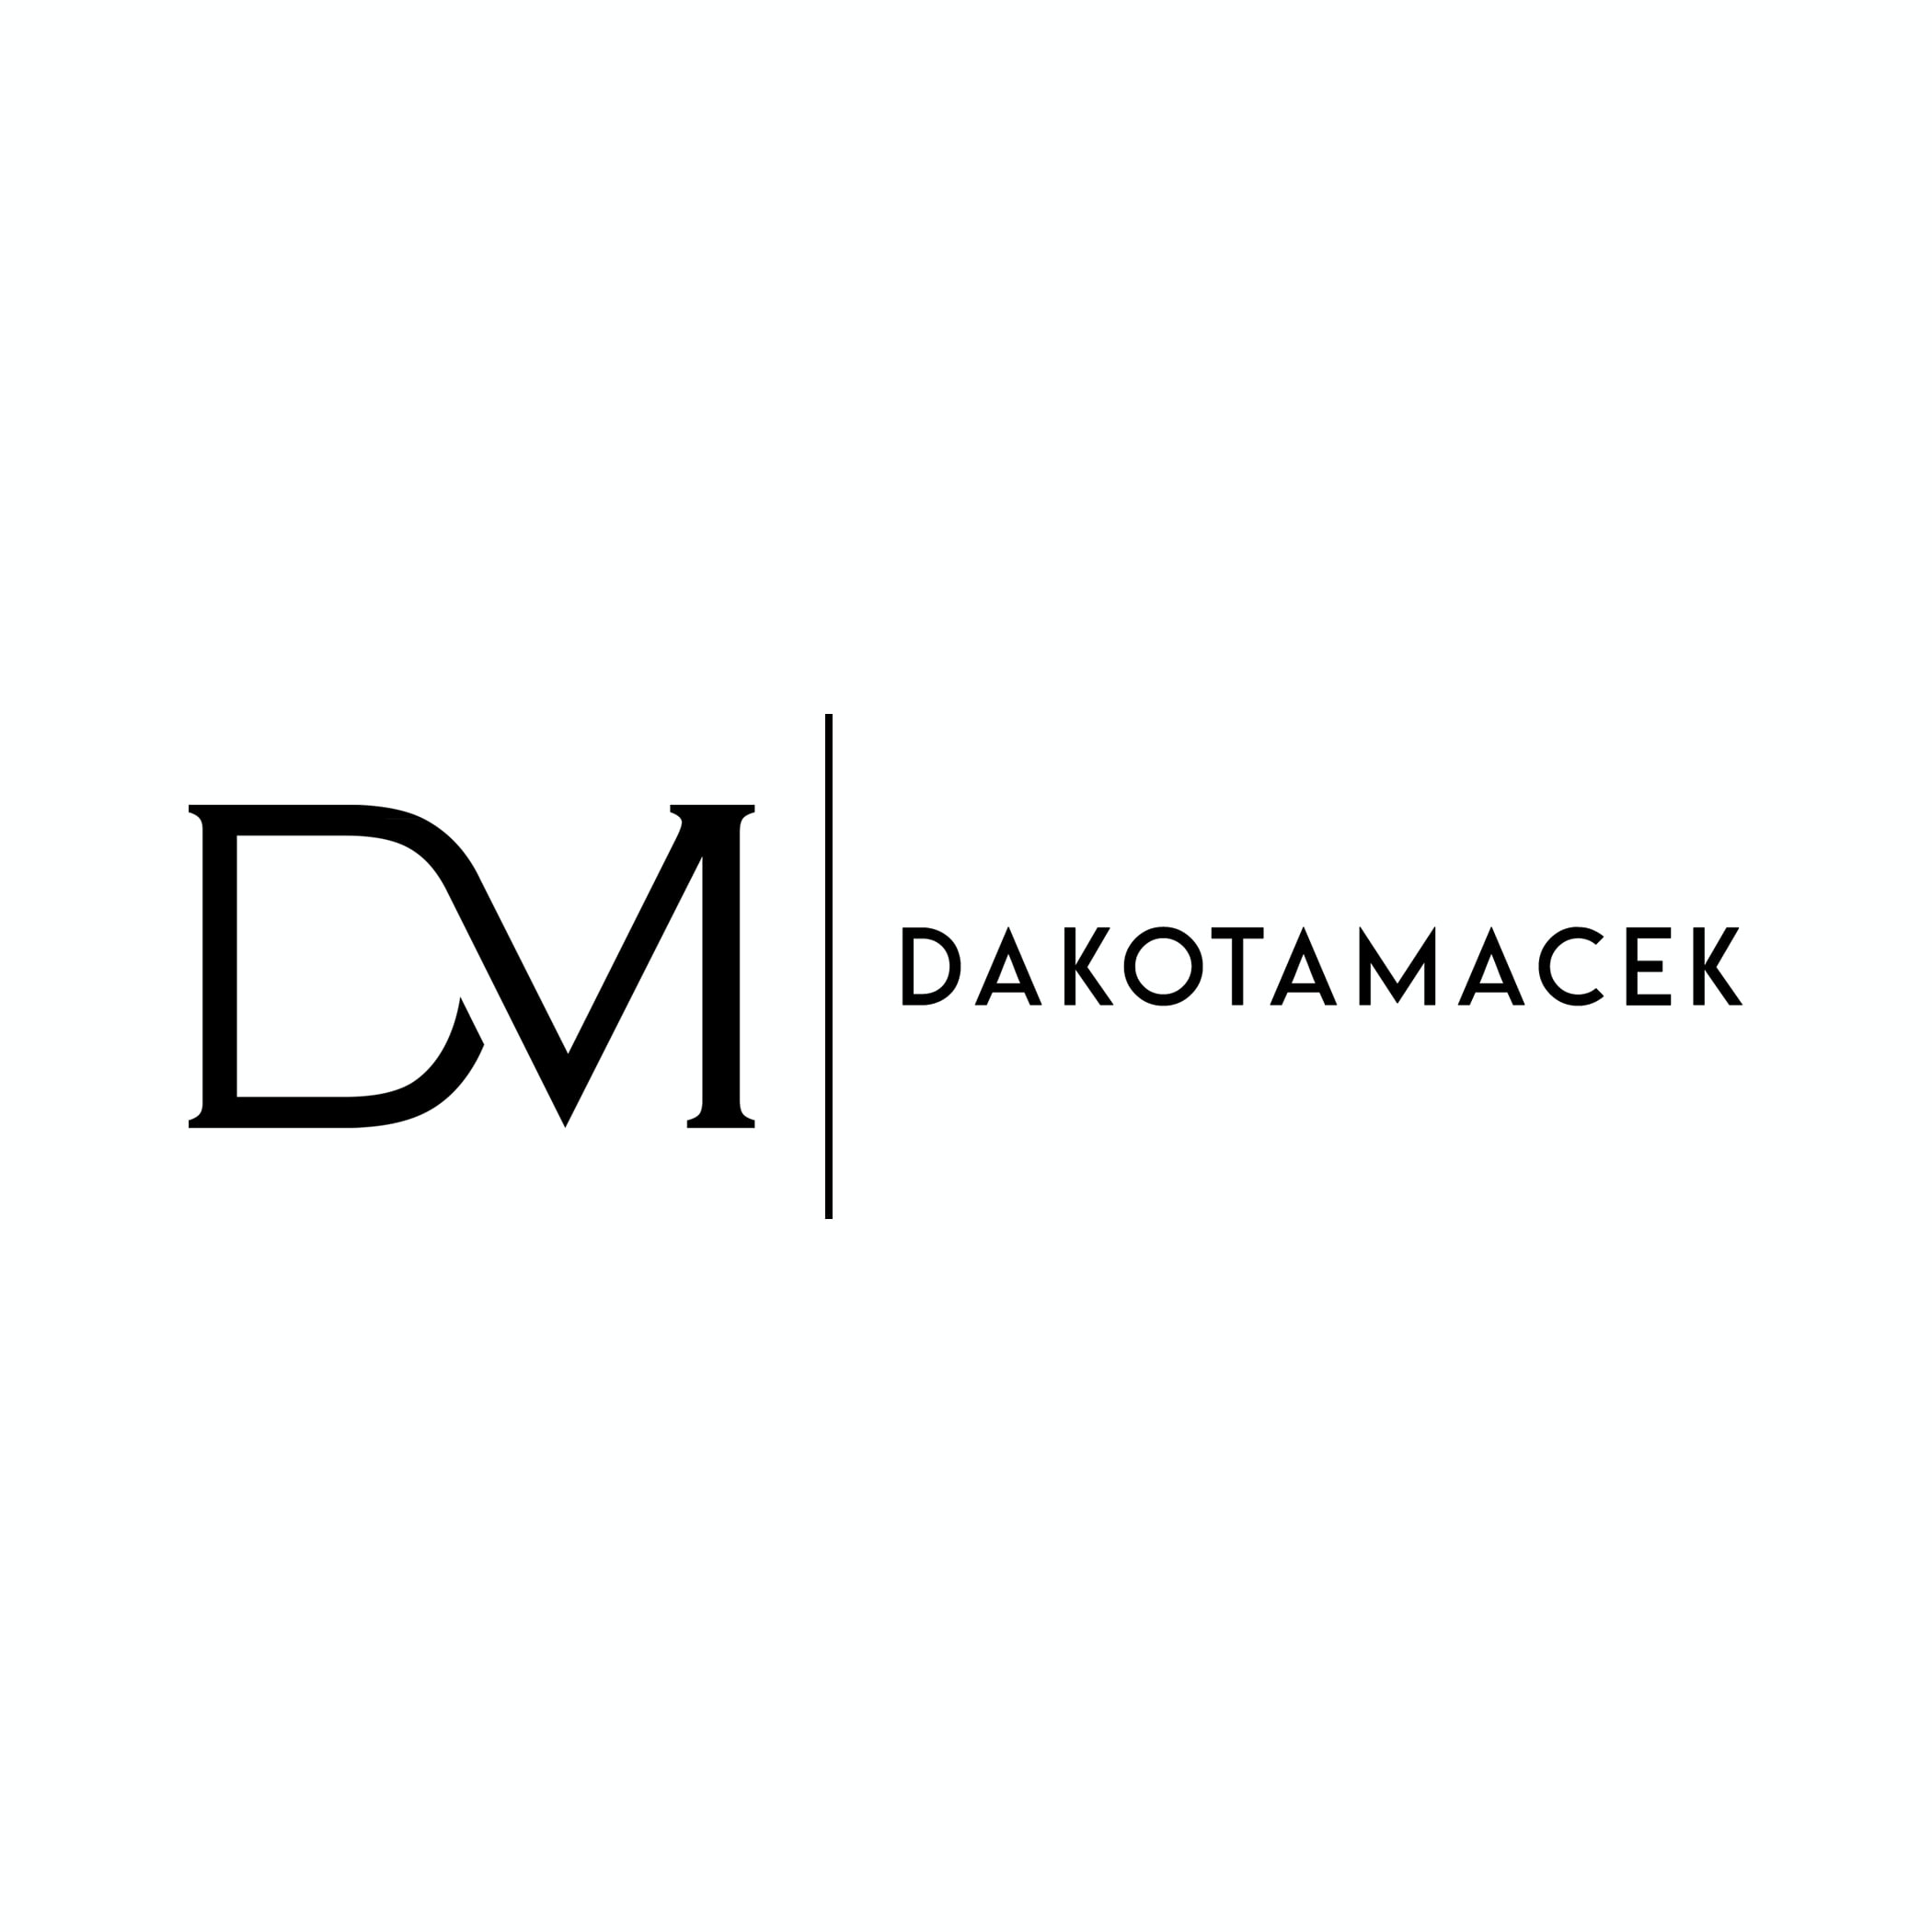 Avatar of user Dakota Macek